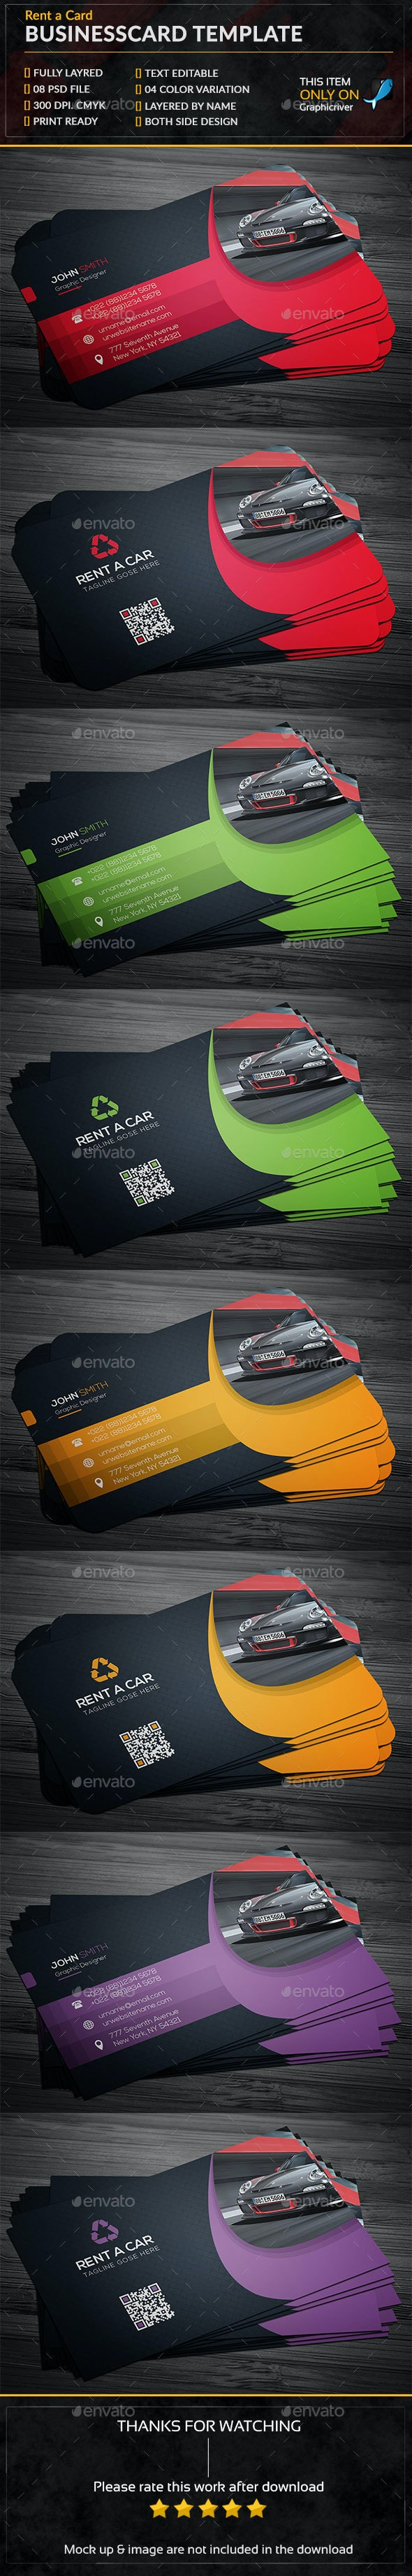 Rent A Car Business Card - Business Cards Print Templates